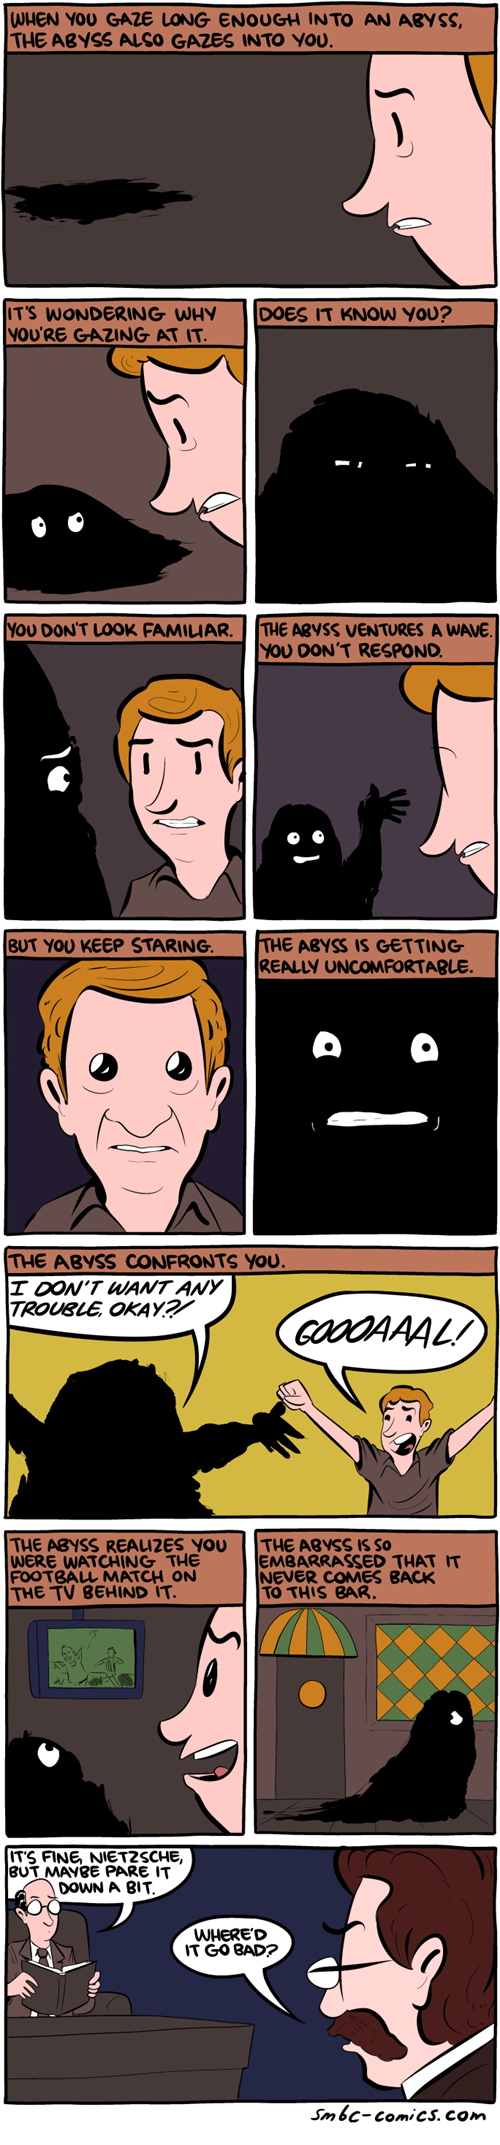 funny-web-comics-when-you-stare-at-the-abyss-the-abyss-stares-back-at-you